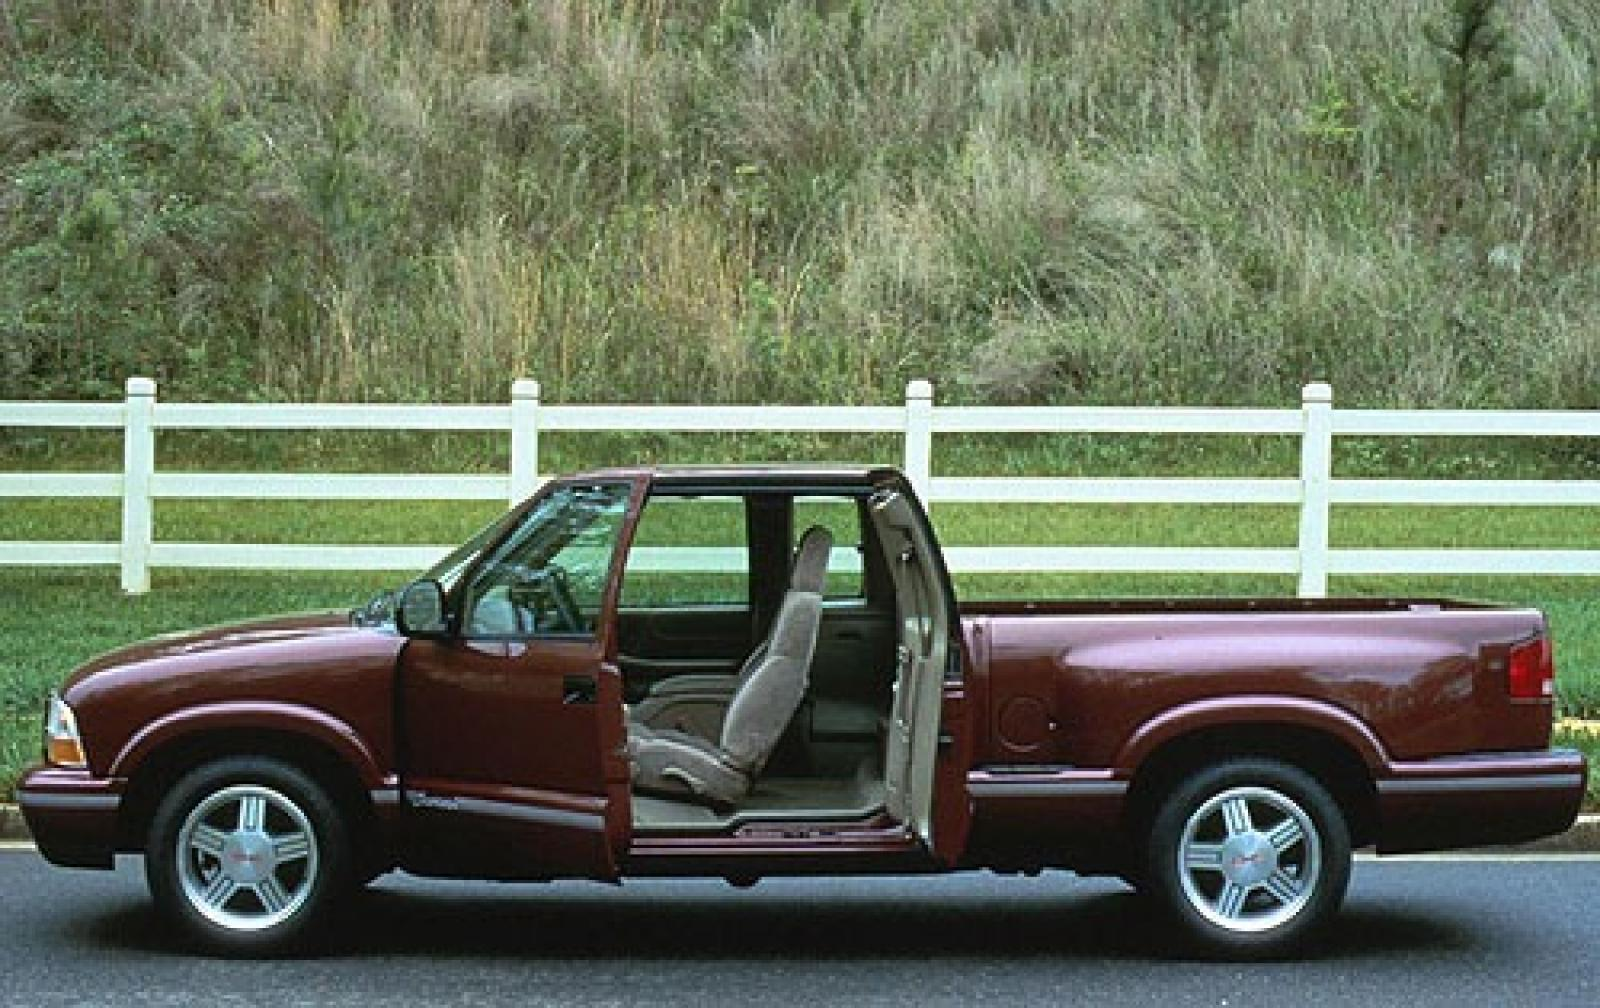 1999 Gmc Sonoma Information And Photos Zombiedrive Jimmy On 20 S 800 1024 1280 1600 Origin